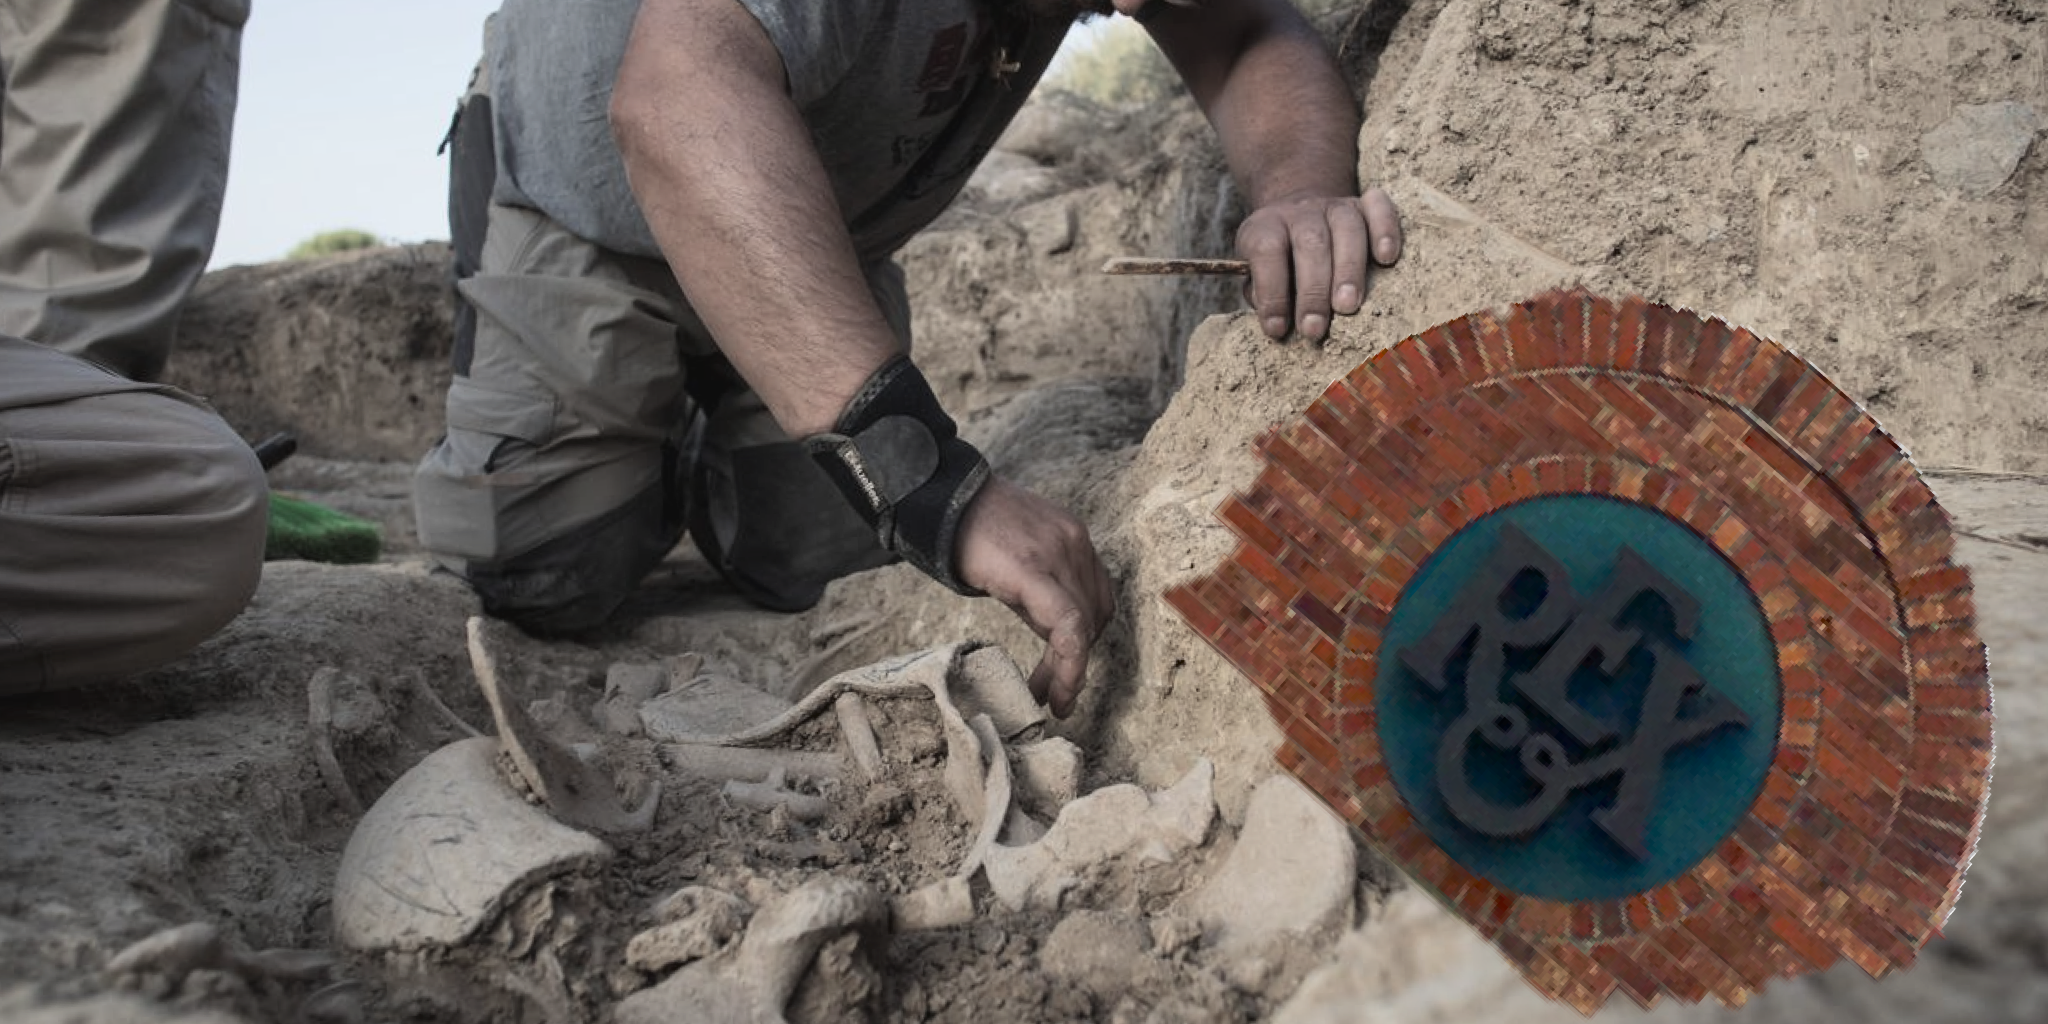 A paleontologist uncovers intact remains of a restaurant gone extinct